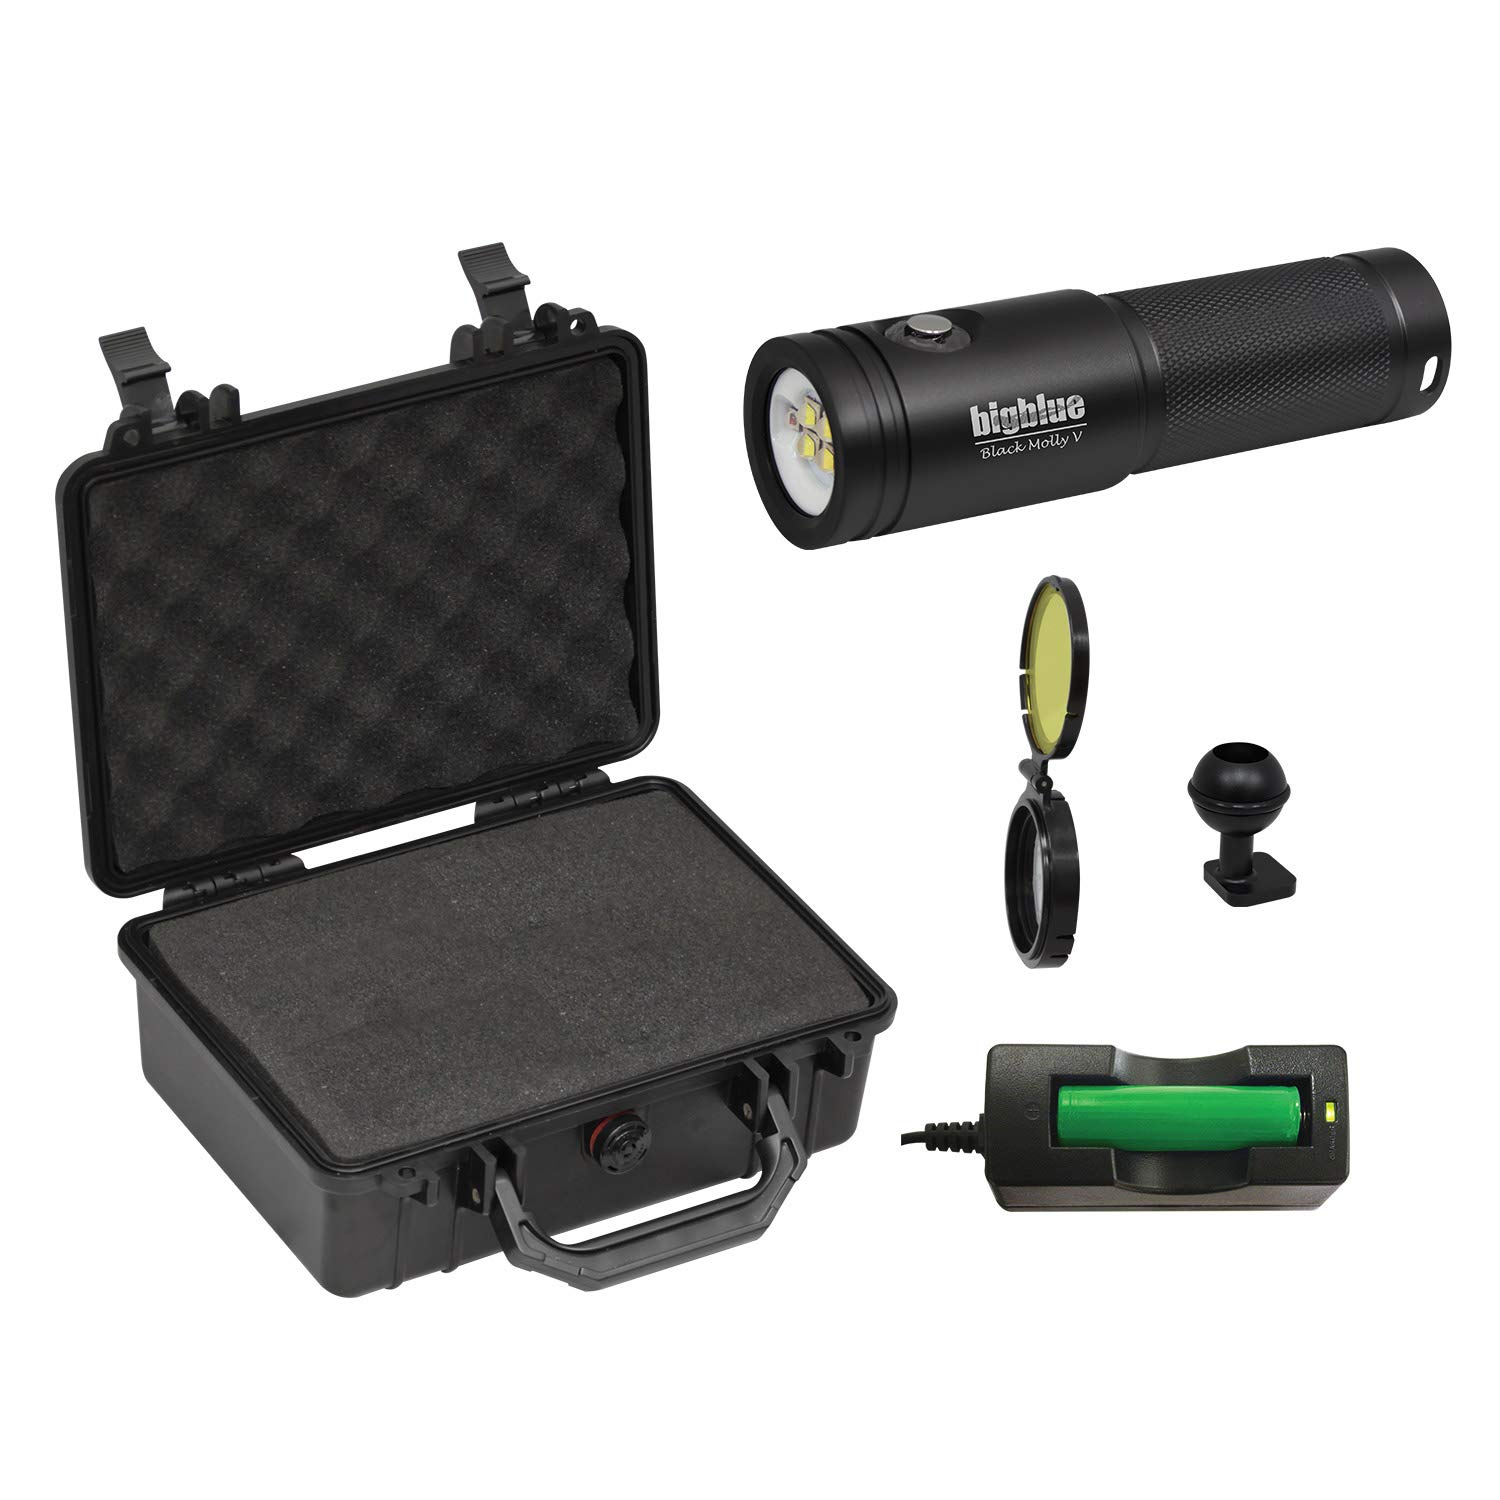 BigBlue AL2600XWP-II - 2600 Lumen Extra-Wide Beam LED Dive Light (Black with Protective Case)